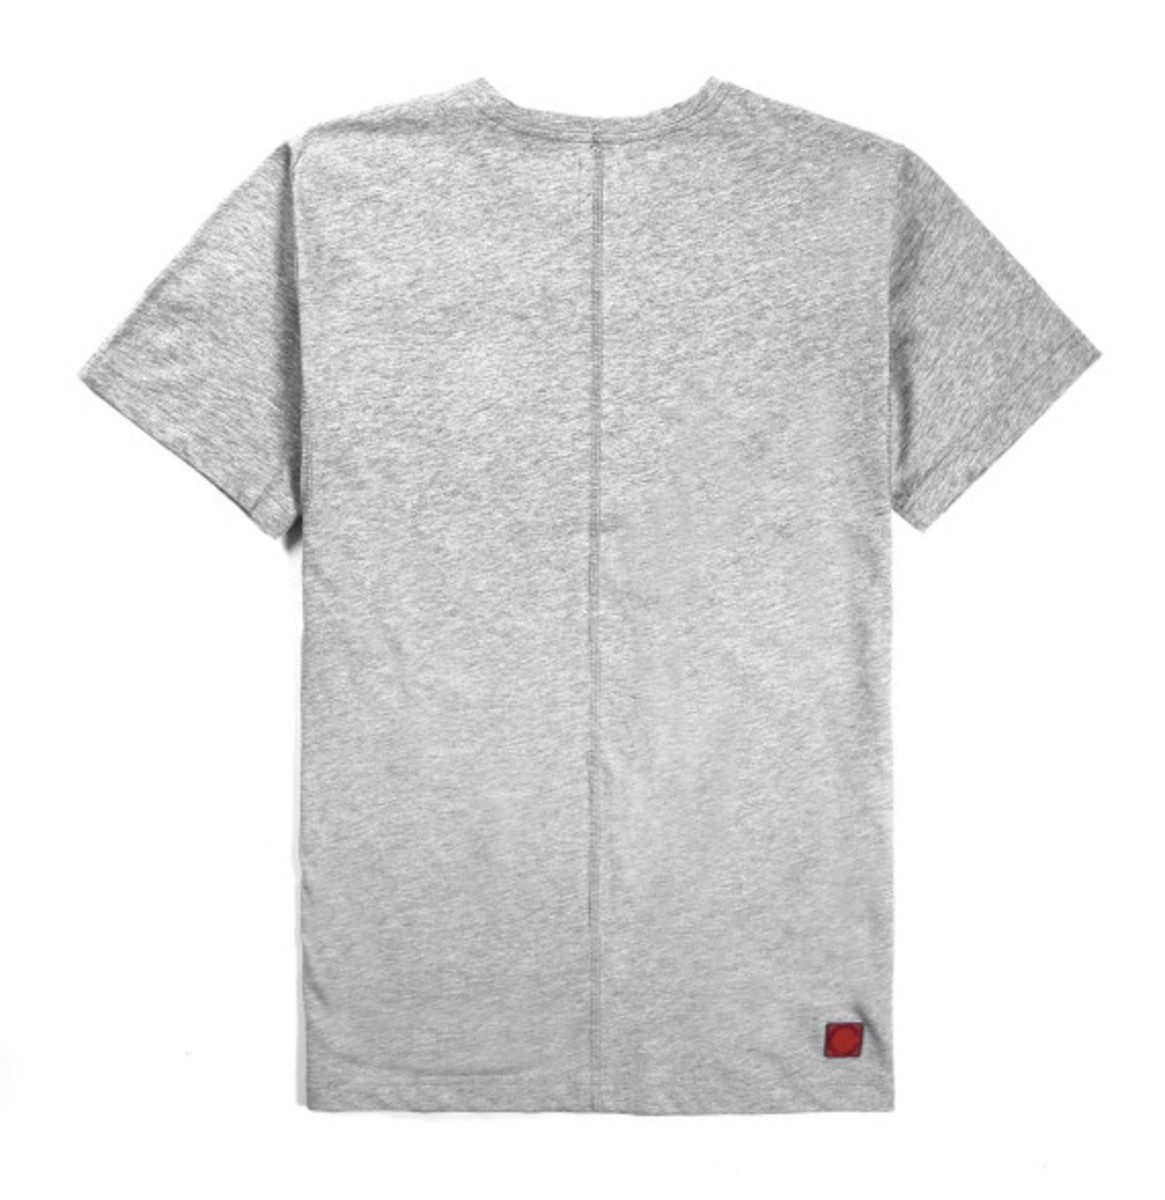 """CLOT - Summer 2014 """"From Dawn Till Dusk"""" Collection 